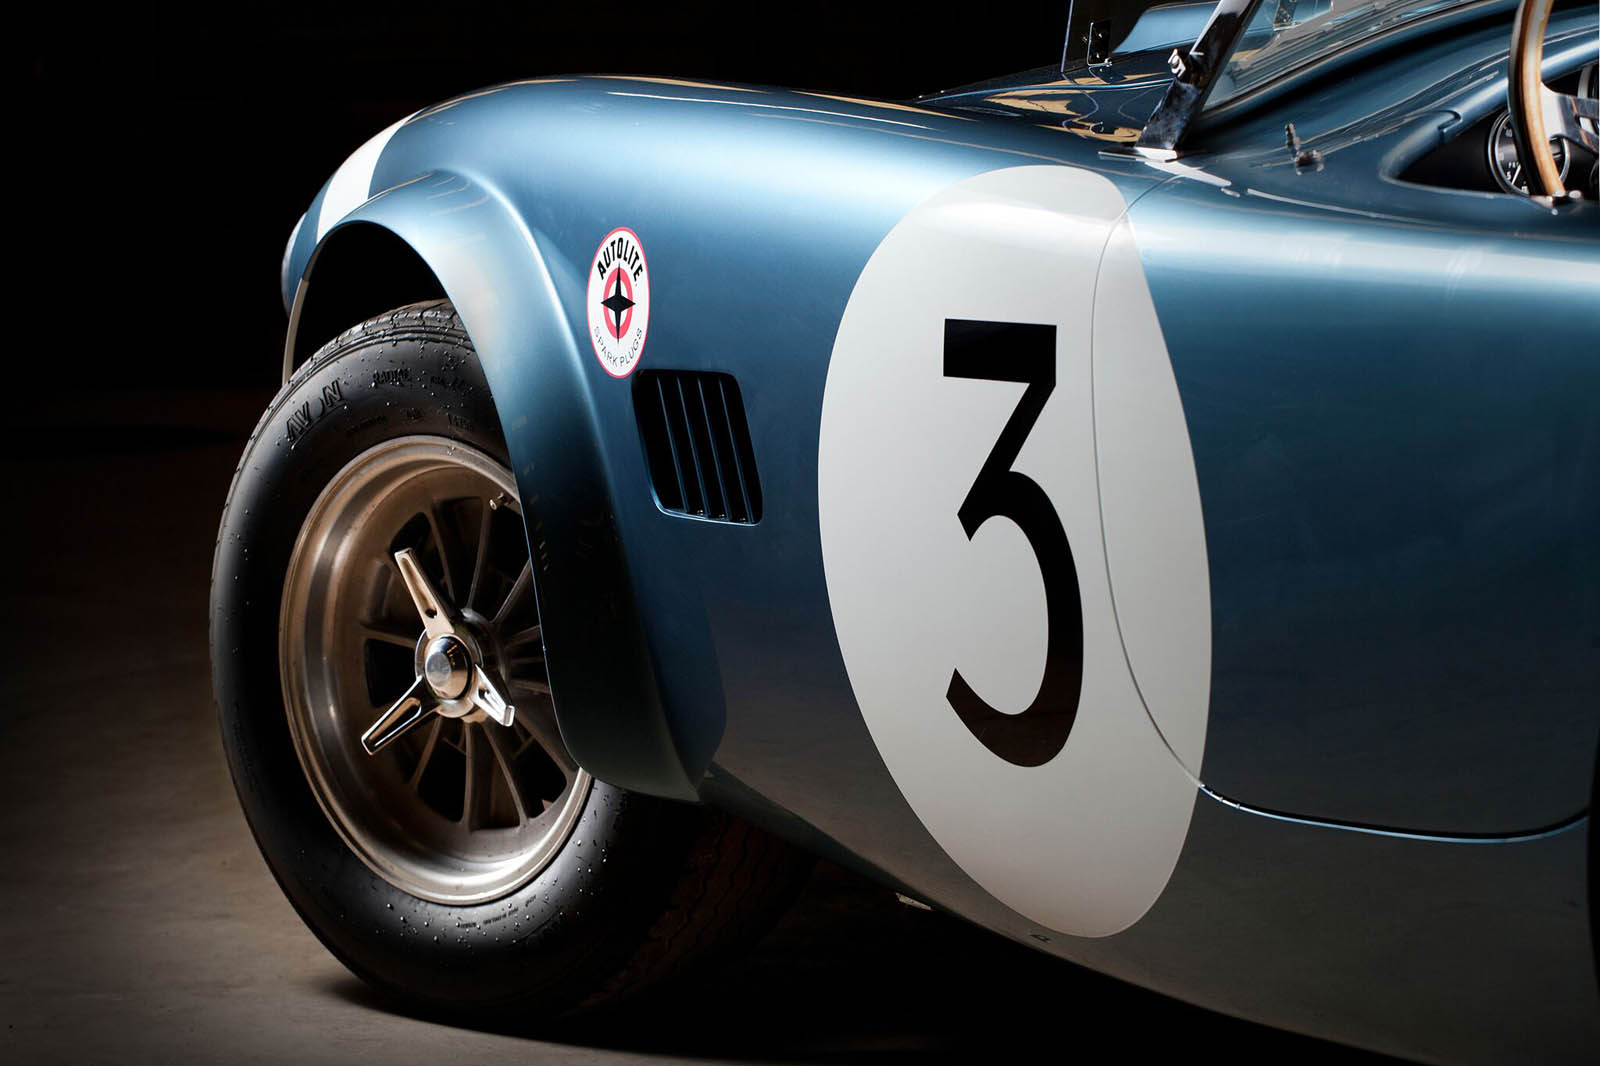 shelby-cobra-bondurant-edition-04